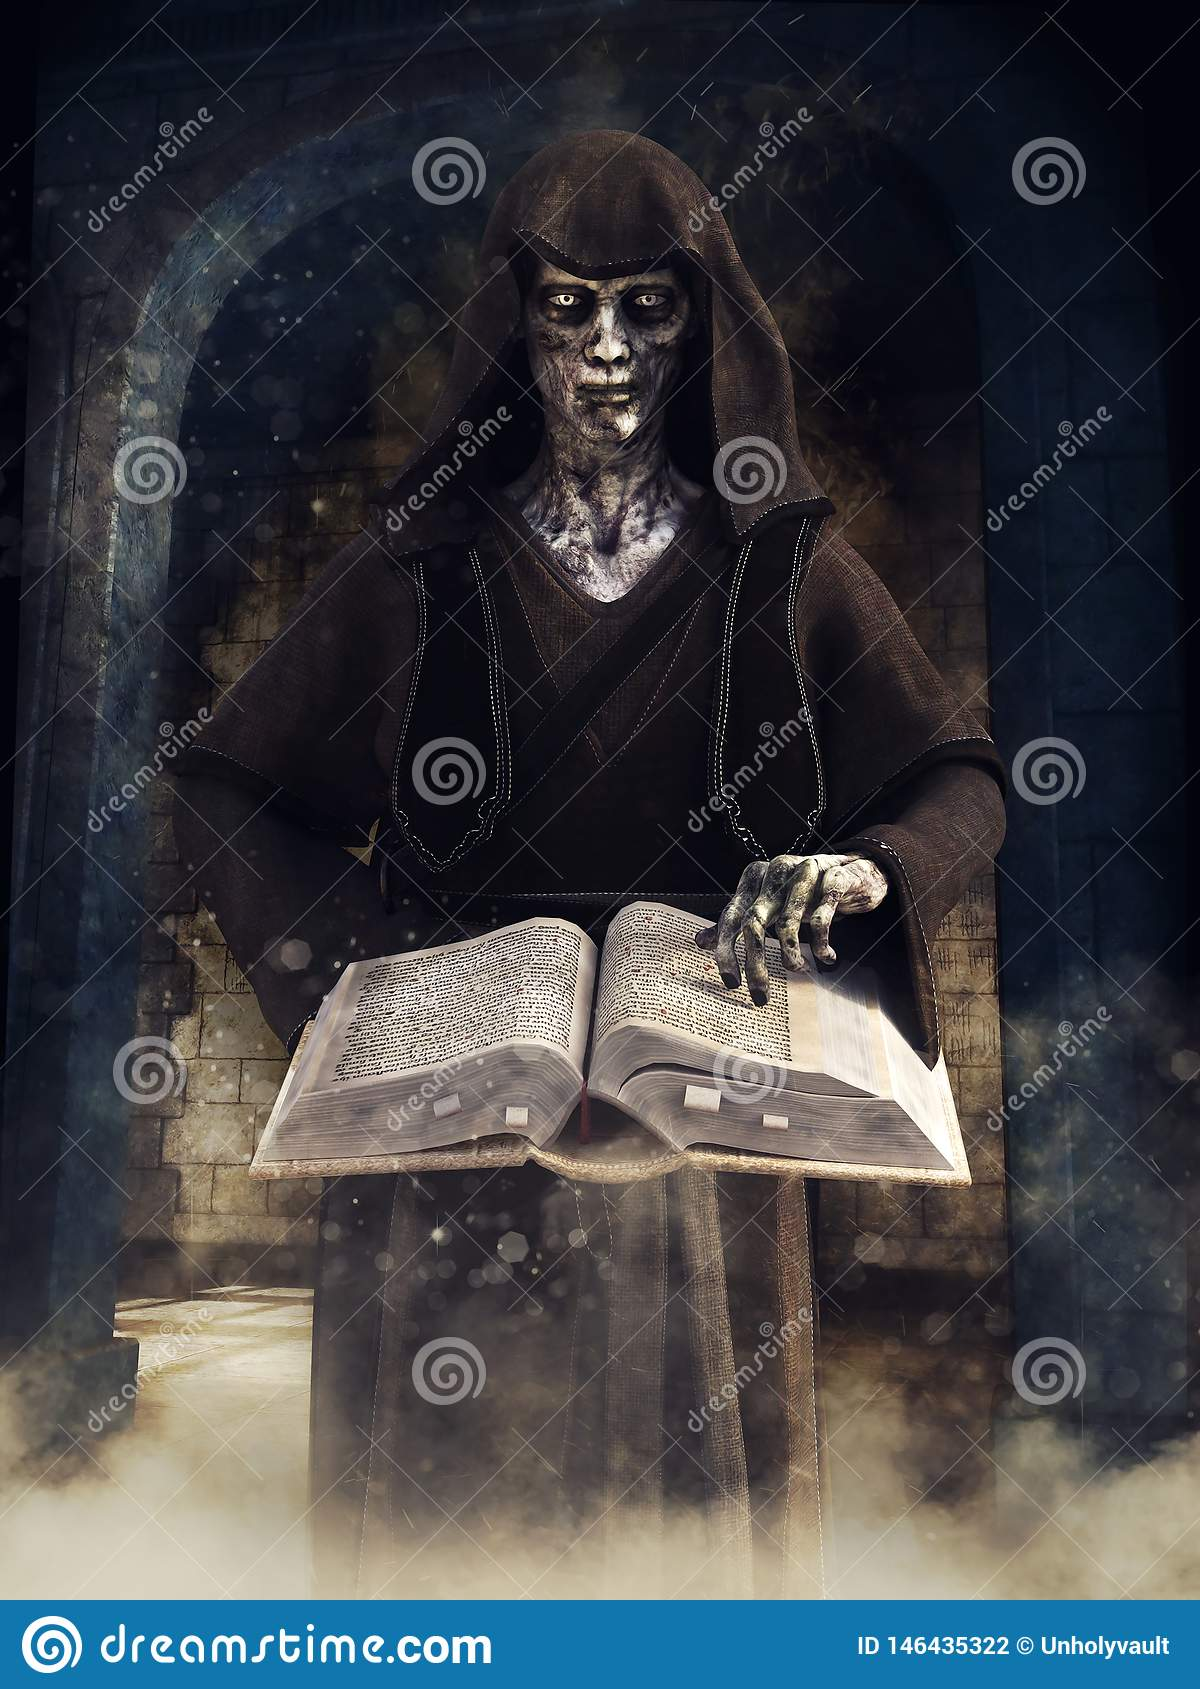 Undead wizard with a magic book